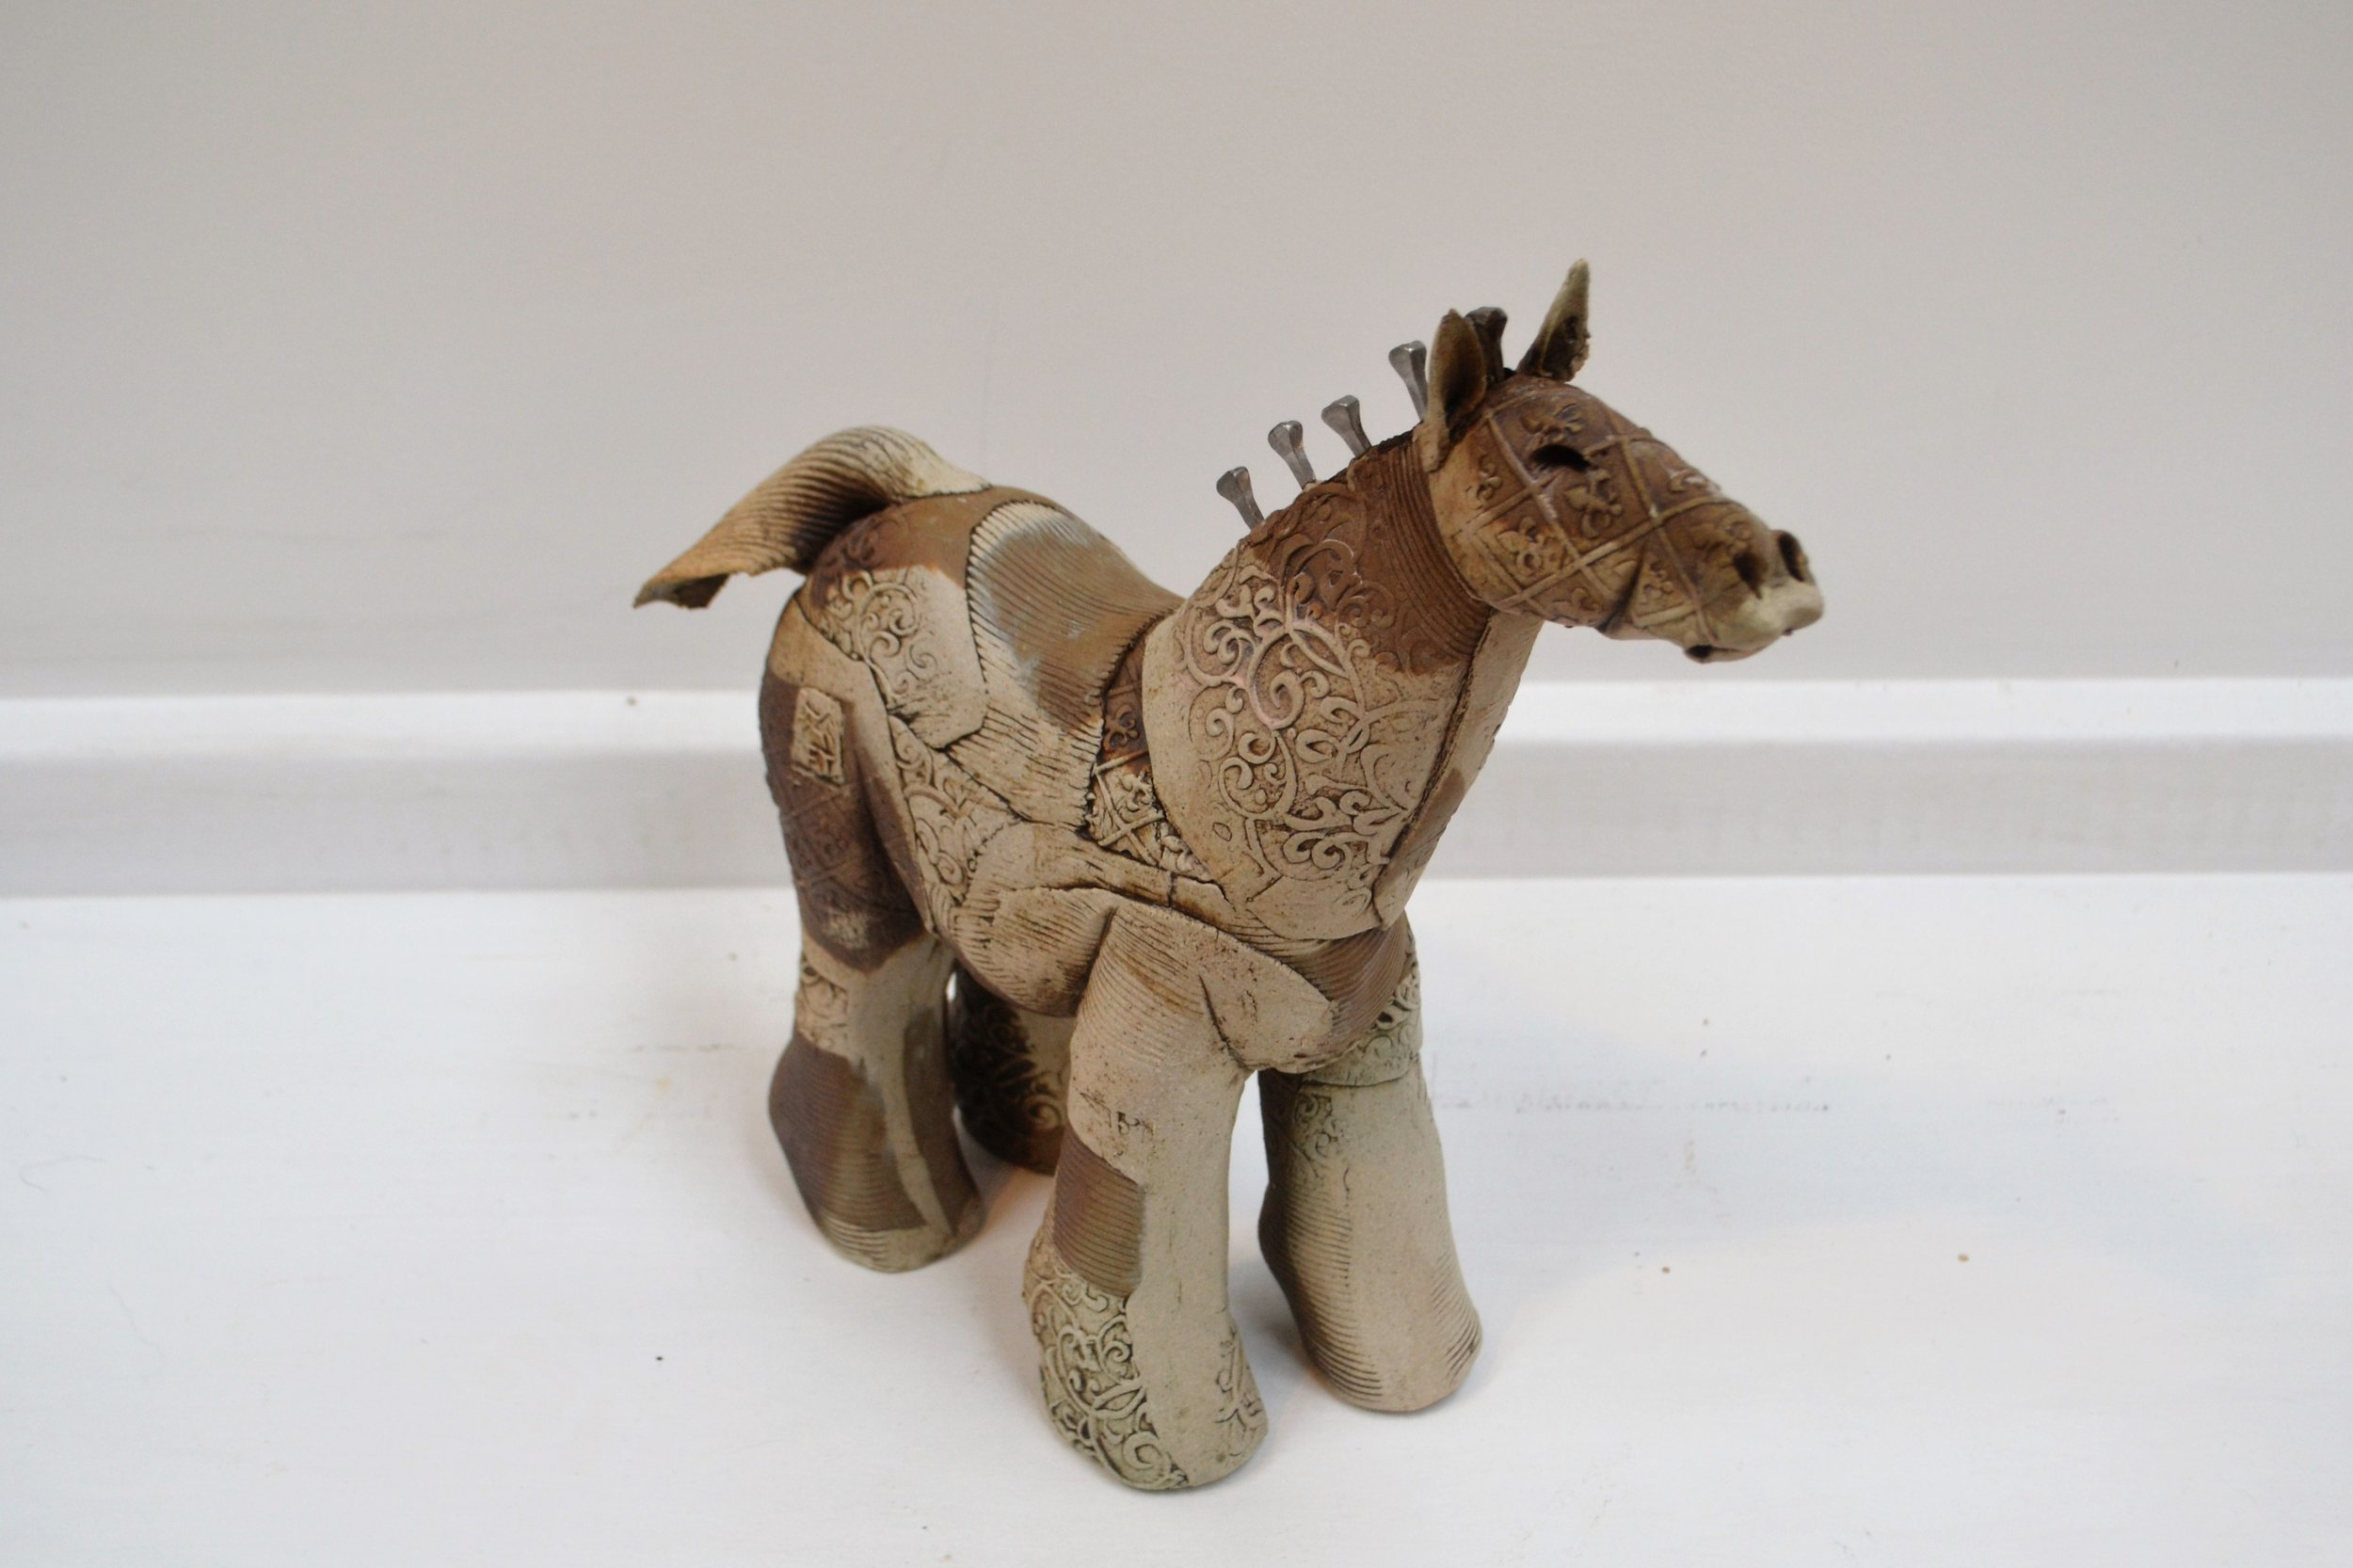 Small Horse  Fiona Tunnicliffe, hand formed ceramic sculpture, 250mm height  sold